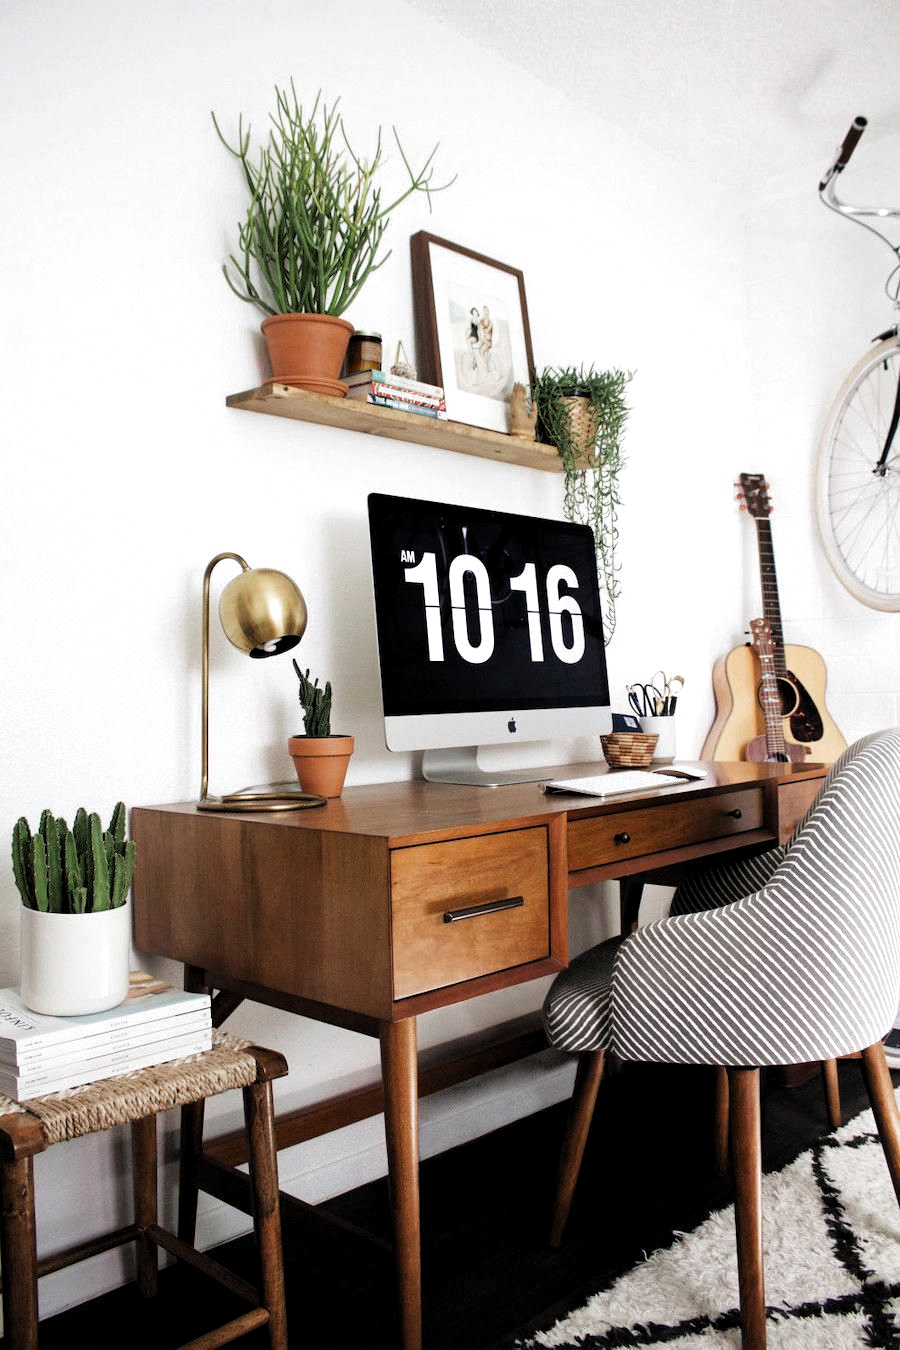 Mid-century modern desks don't have to be sourced from an antique shop or yard sale. Nowadays, the mid-century modern decorating style has become immensely popular. Many furniture makers have started creating beautiful mid-century modern inspired designs for all types of furniture, like office desks. This Mid-Century Modern Desk is from New Darlings blog. #apartmentdecor